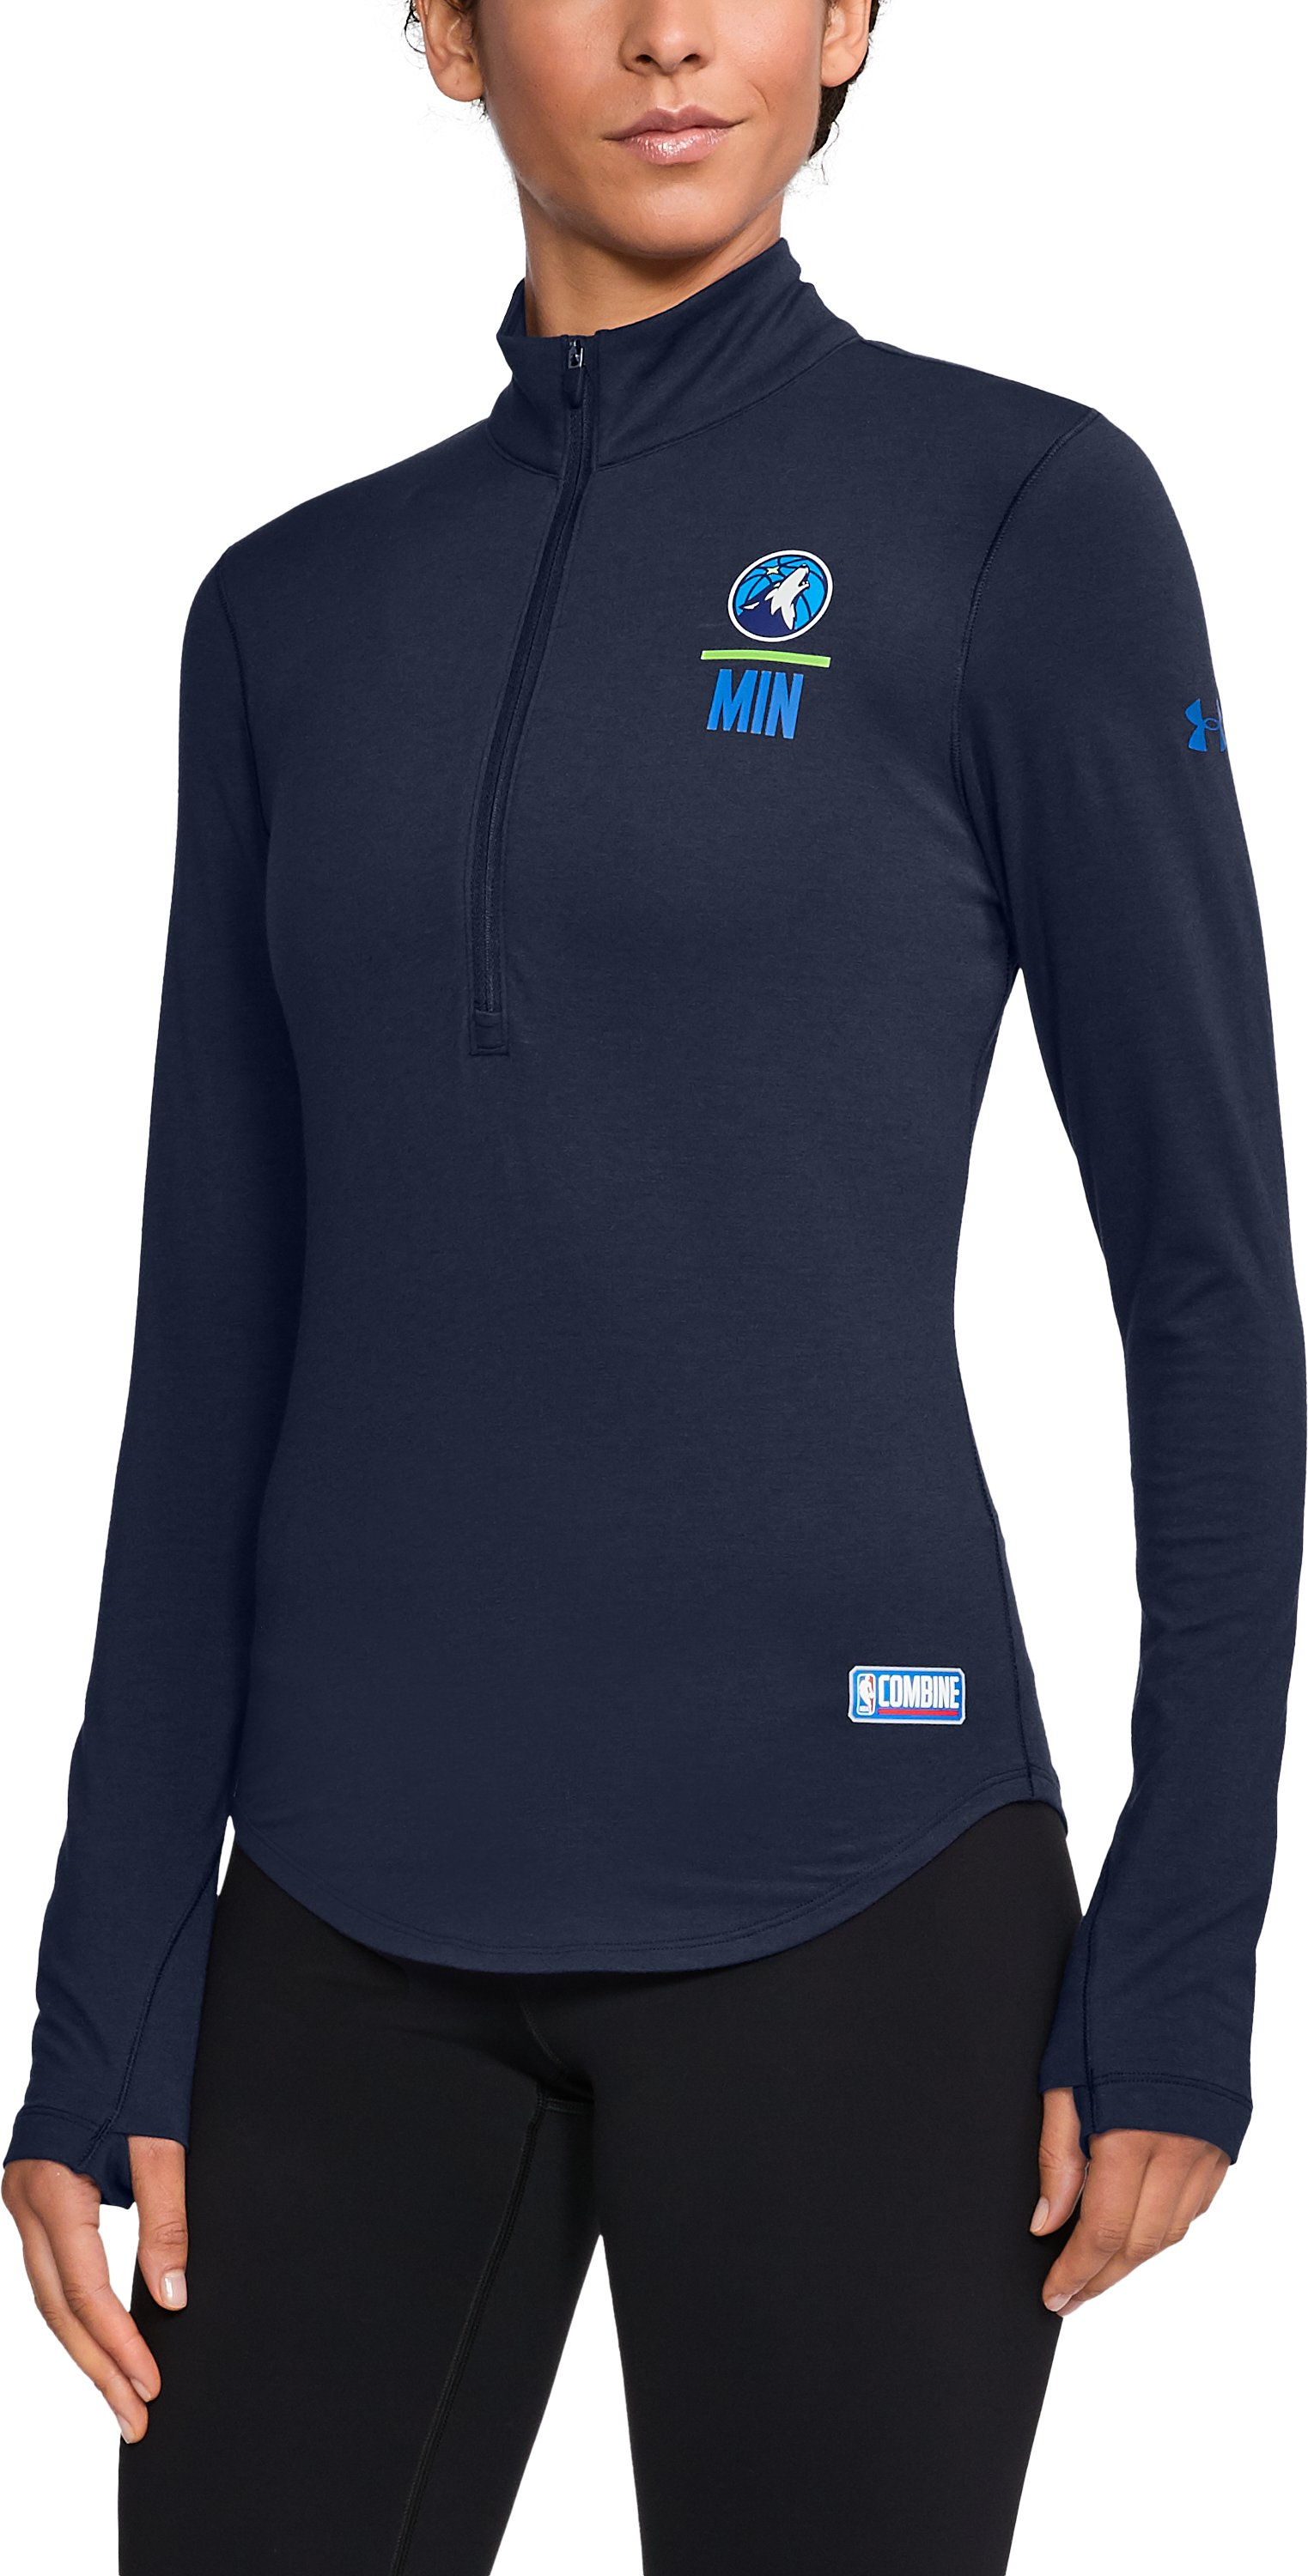 Women's NBA Combine Authentic Charged Cotton® 1/2 Zip, NBA_MINNESOTA TIMBERWOLVES_MIDNIGHT NAVY